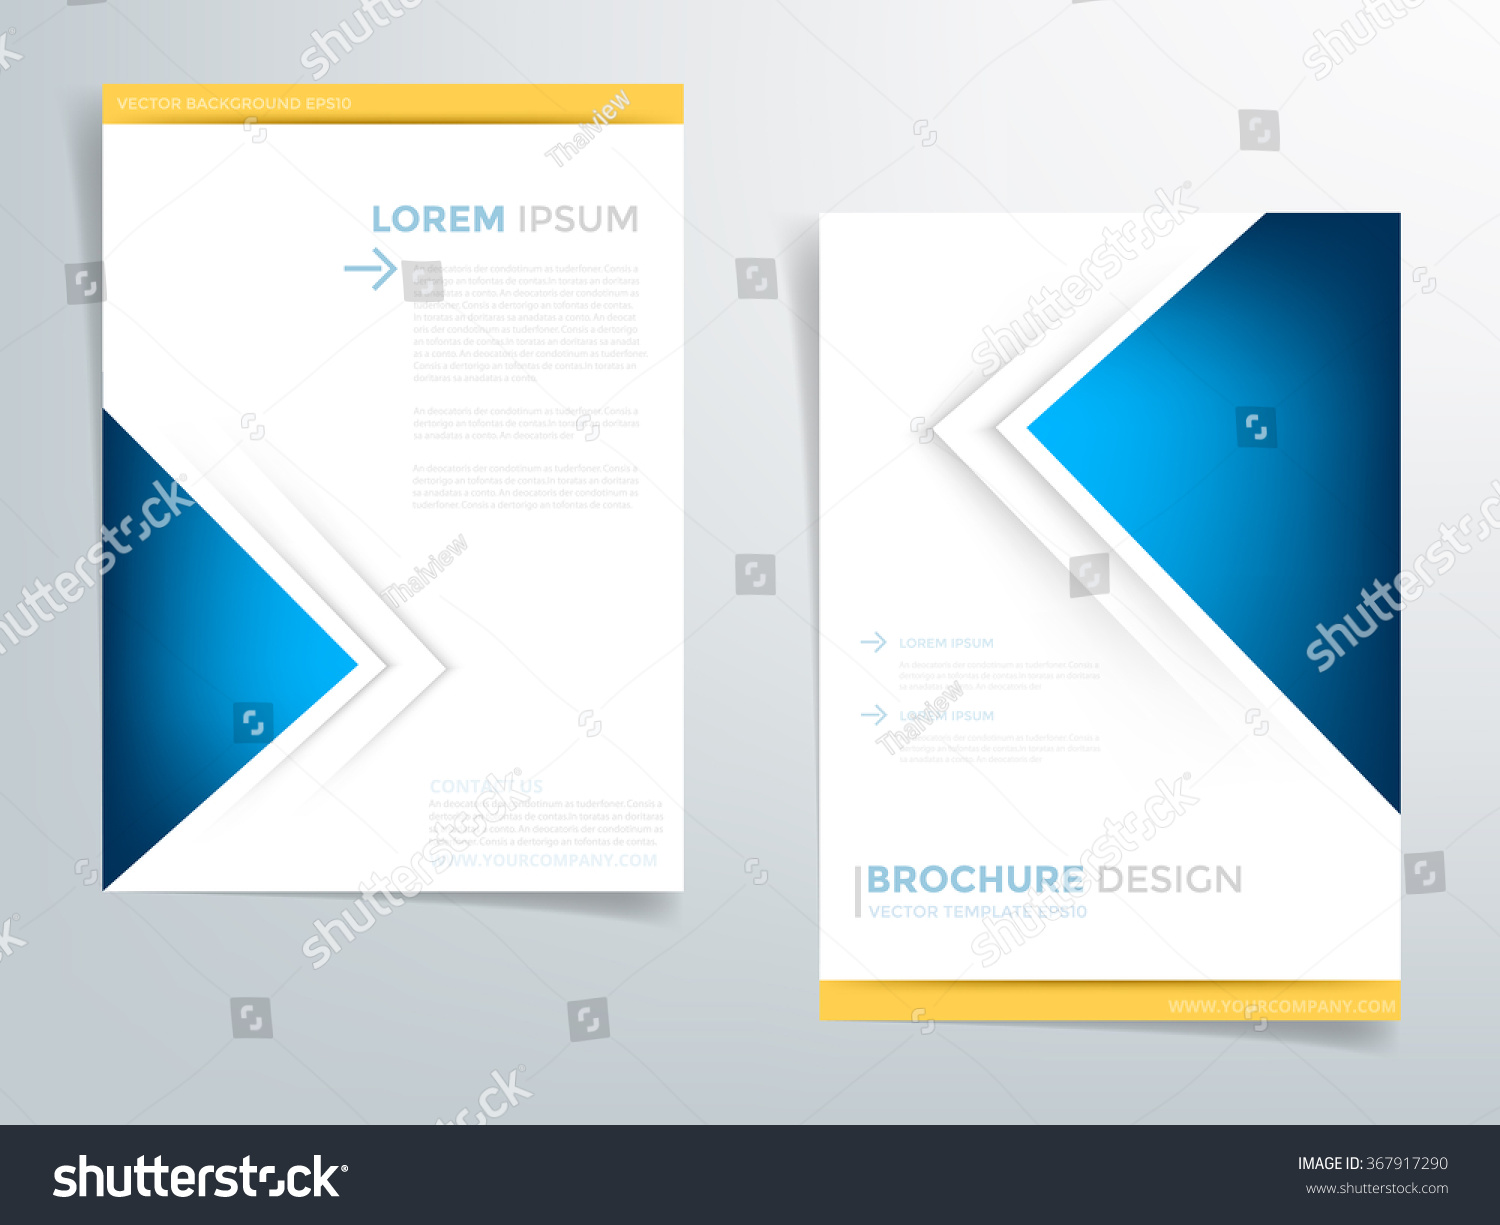 Blue brochure template flyer design background stock for Paper ad design templates